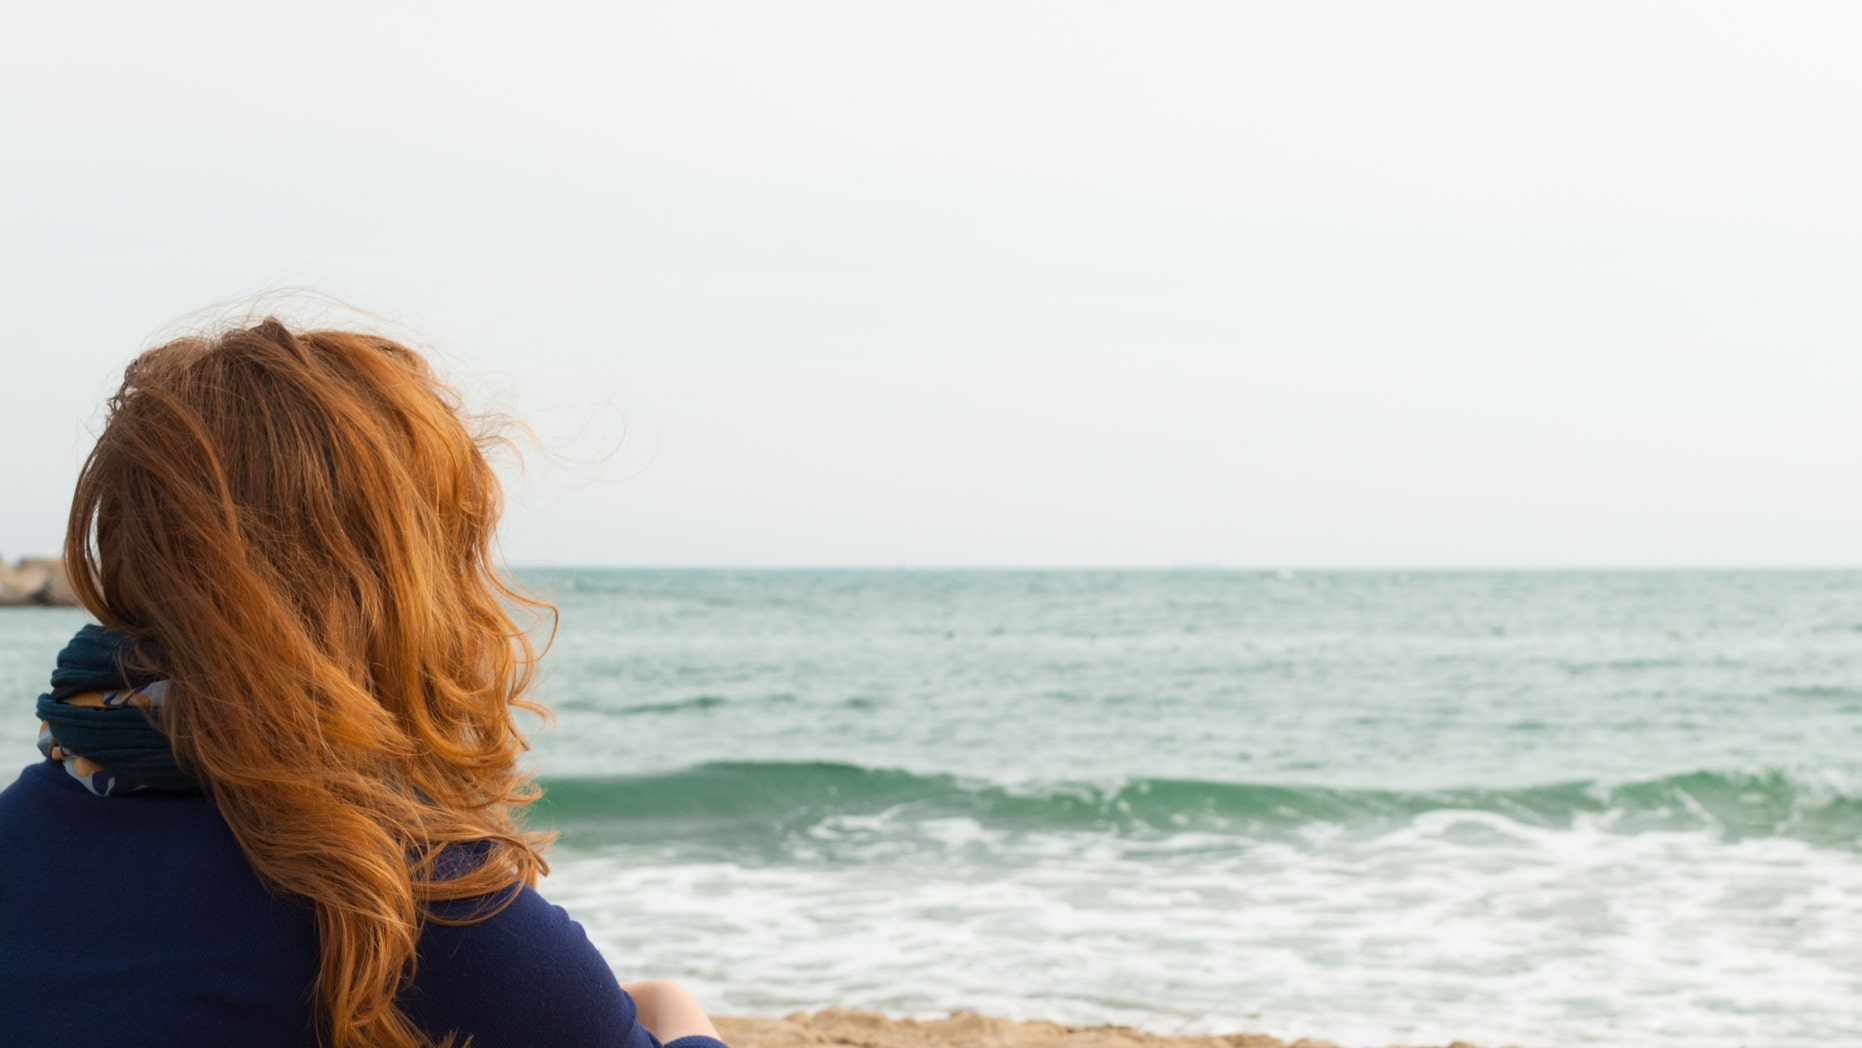 Redhead girl on a Barcelona sand beach looking at the sea, view from behind